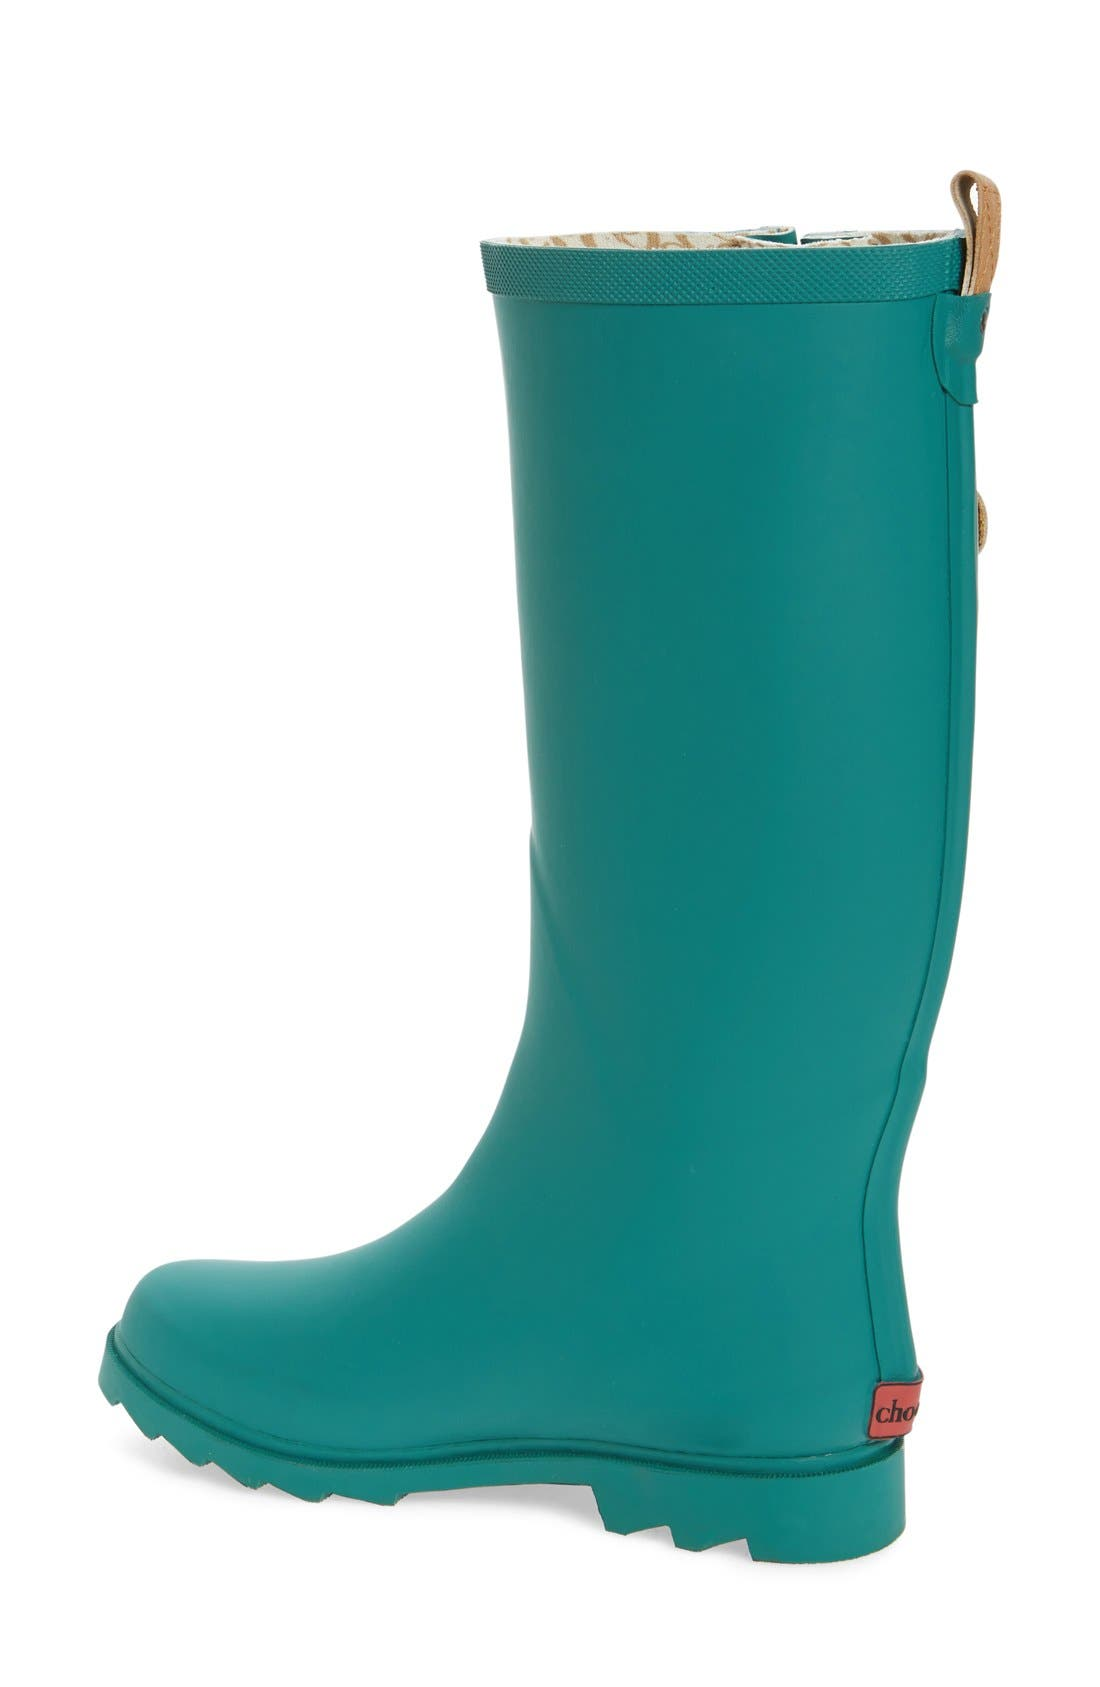 Alternate Image 2  - Chooka 'Top Solid' Rain Boot (Women)